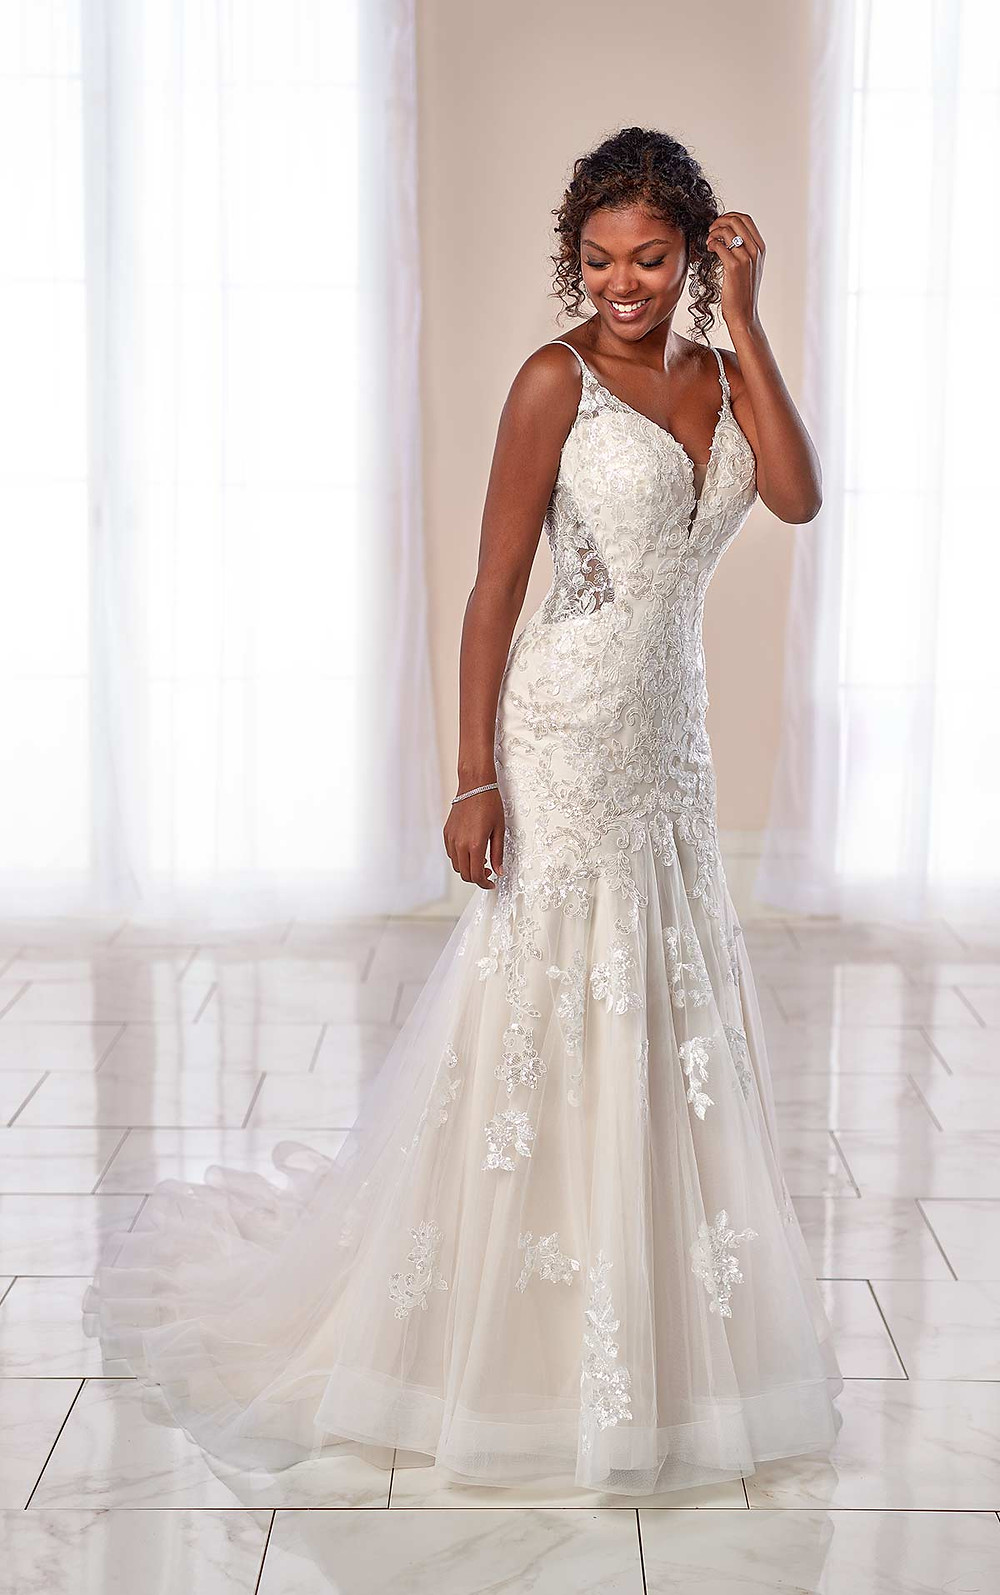 A Stella York 2020 lace and mesh mermaid fit and flare wedding dress with straps